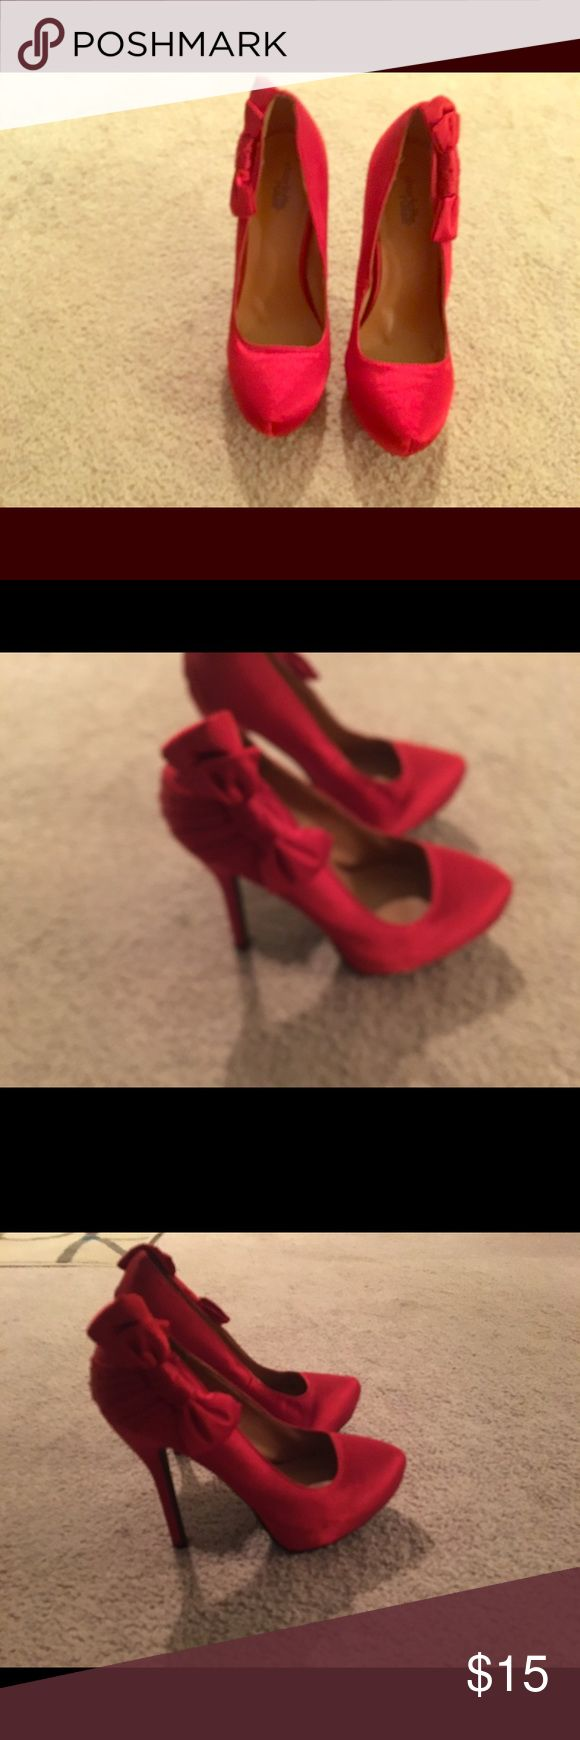 """Red heels from Charlotte Russe Red heels with bow on the side. Heel: 5.25""""  Platform: 1.75. Brand New. Charlotte Russe Shoes Heels"""